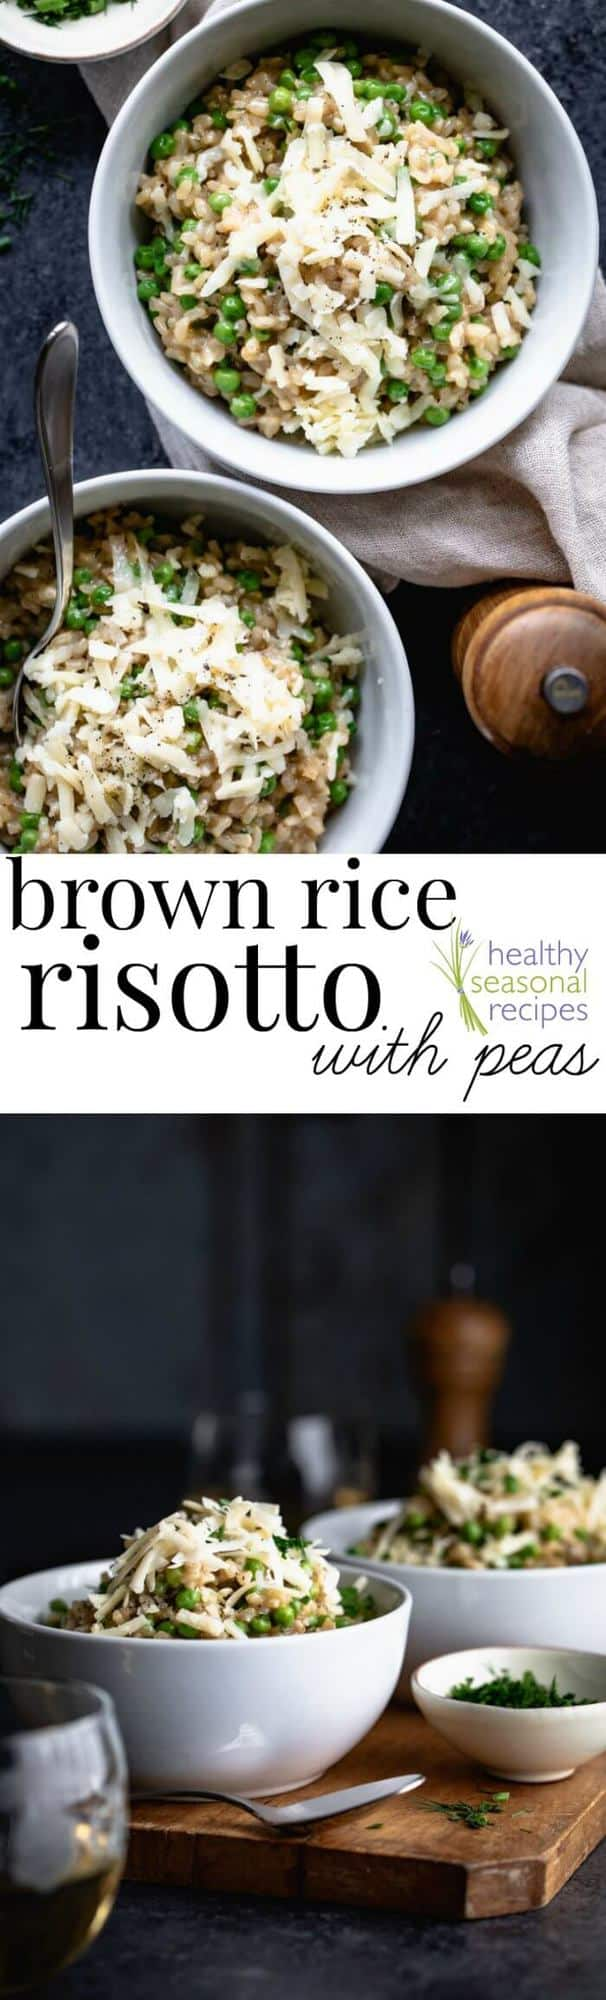 Brown Rice Risotto with peas and herbs, a healthy vegetarian dinner the whole family will love. #brownricerisotto #brownrice #risotto #vegetarian #glutenfree #cheddarcheese